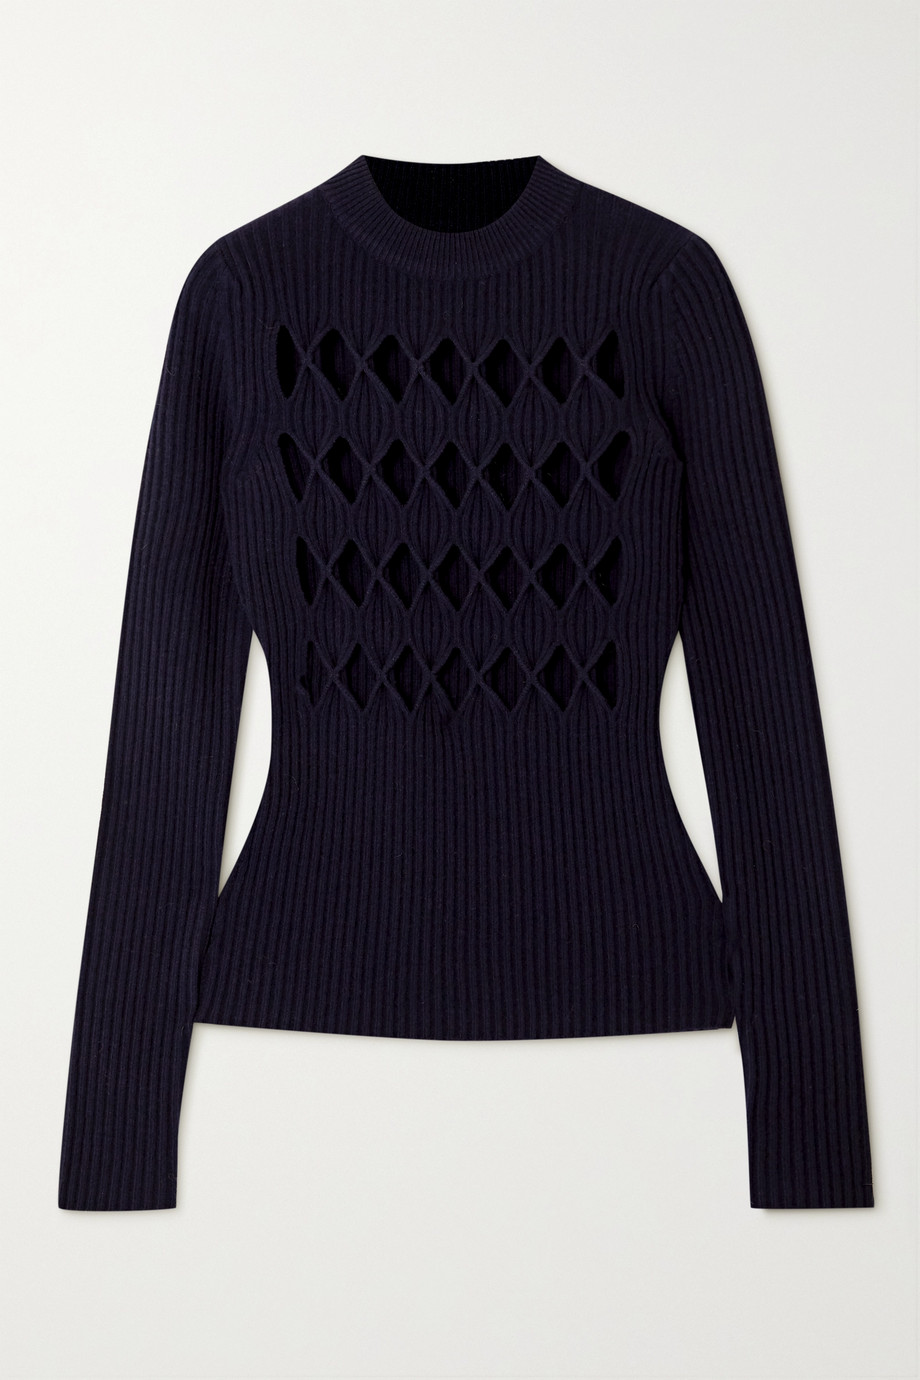 Victoria Beckham Cutout ribbed wool-blend sweater